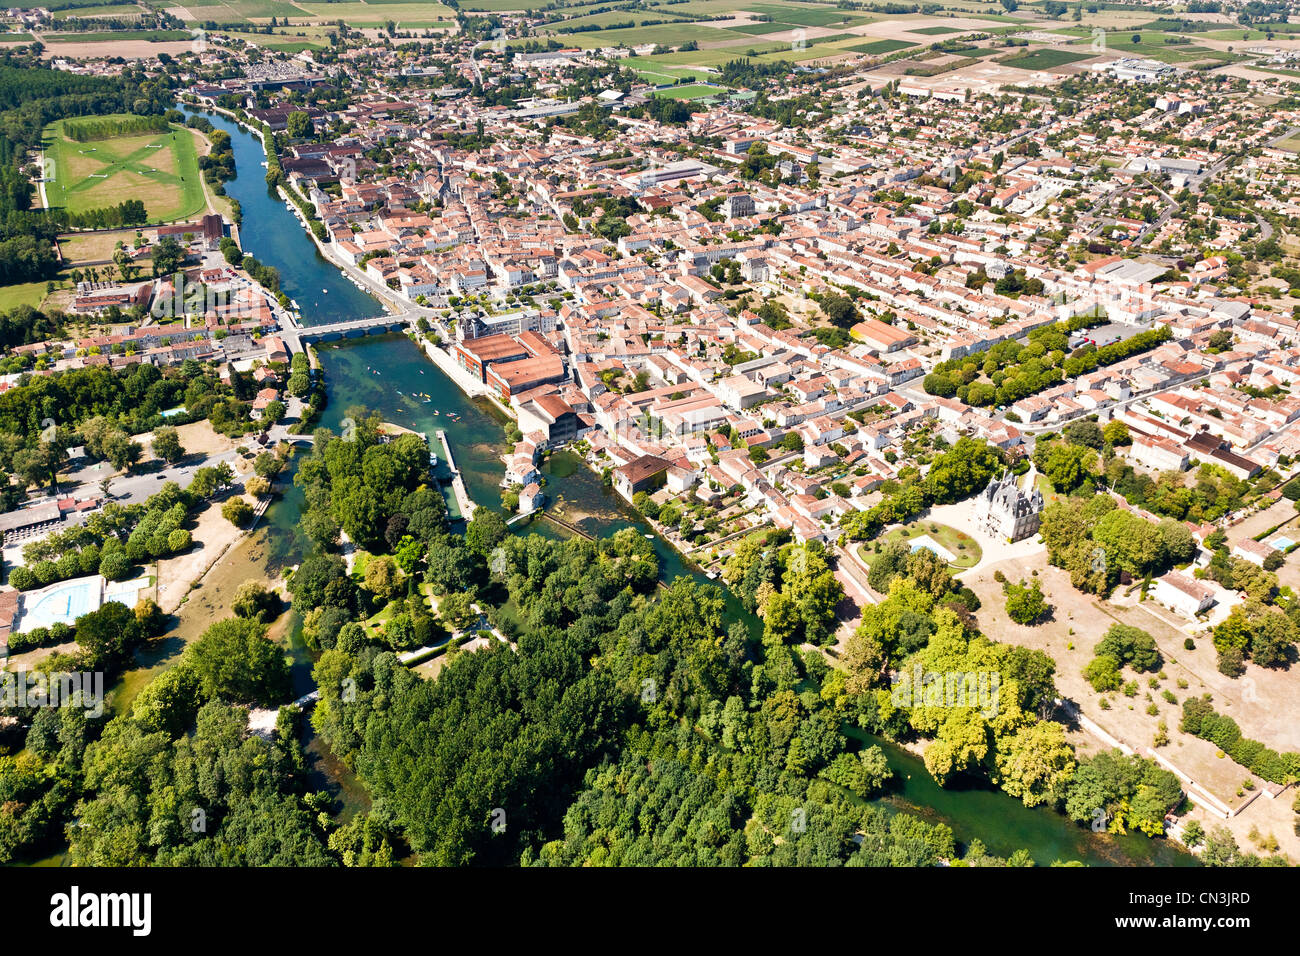 France, Charente, Jarnac, is the proximity of the Charente, which contributed to the growth of the city with the - Stock Image